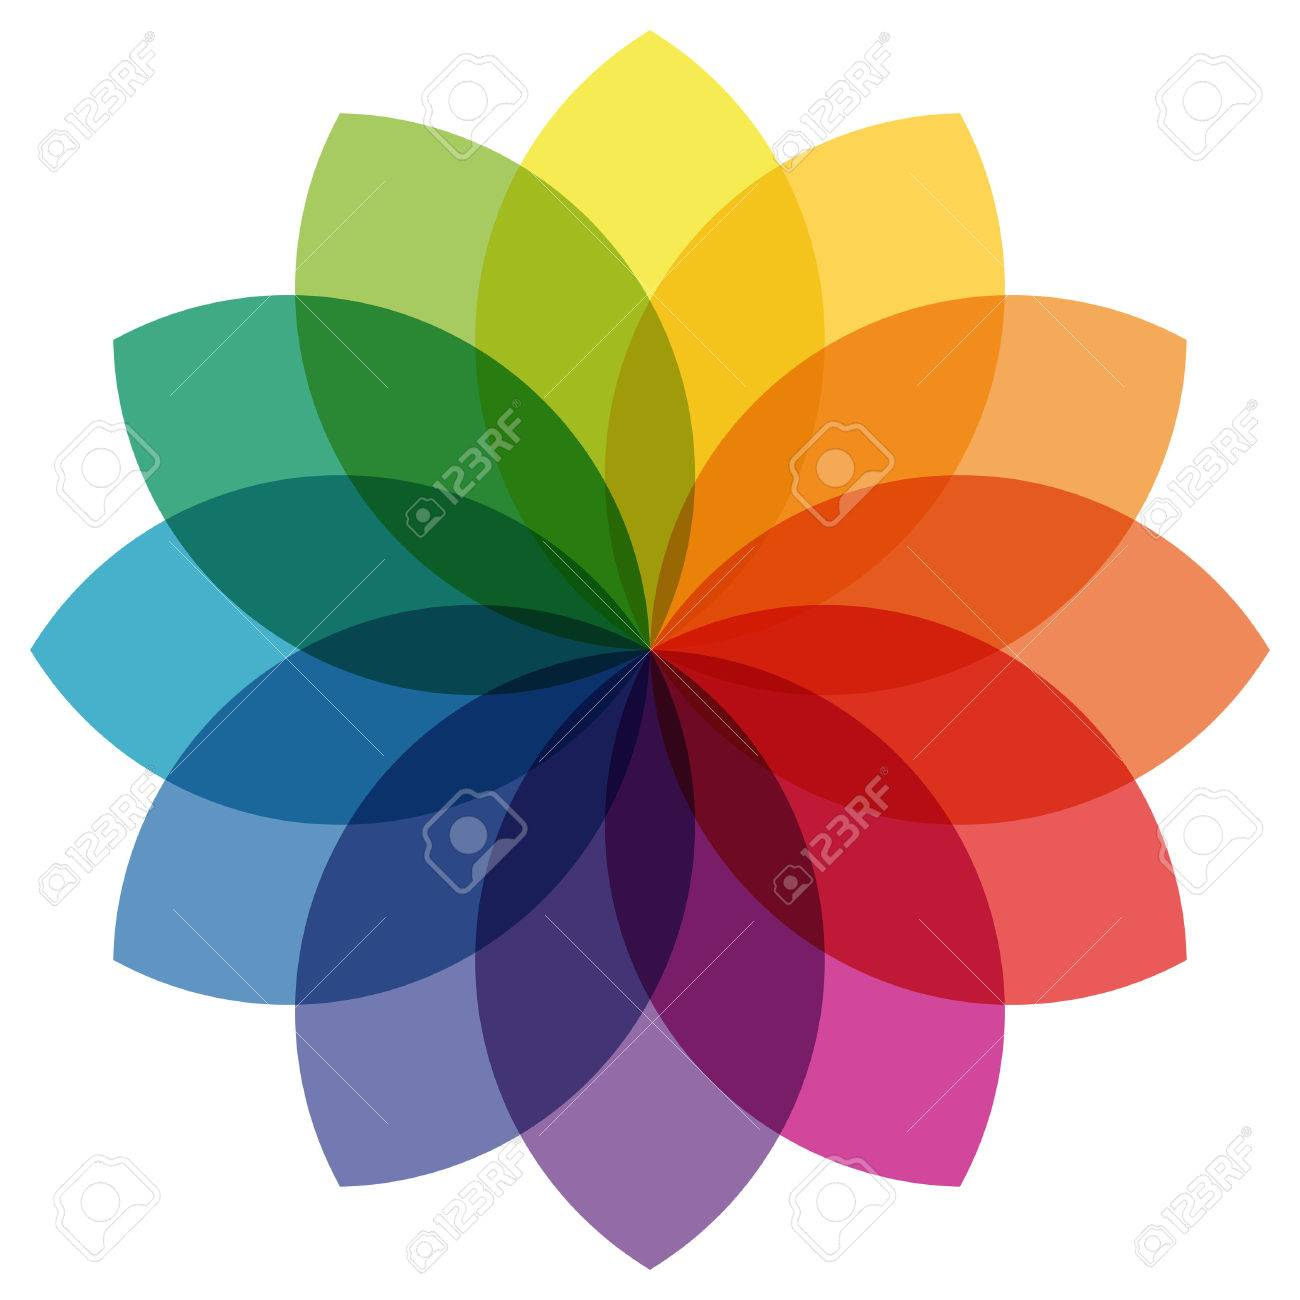 illustration of printing color wheel with different colors in gradations - 61541050